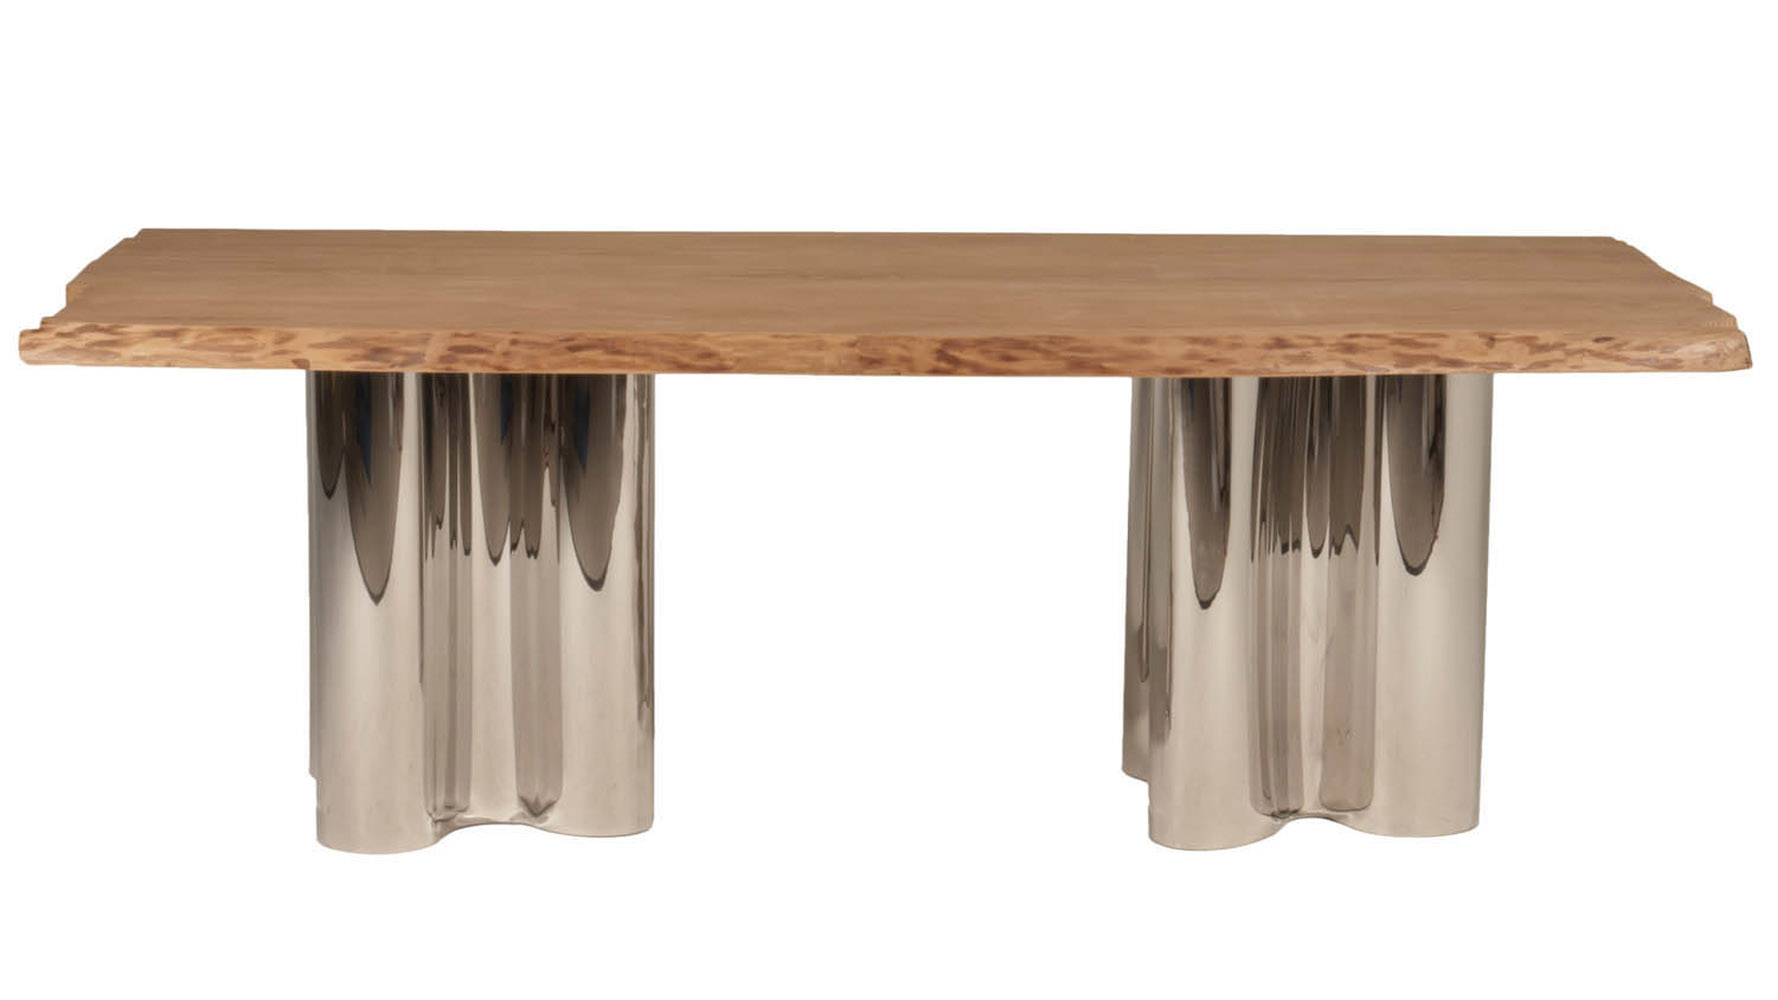 Ss dining table designs images best fresh cheap stainless for Ss dining table images